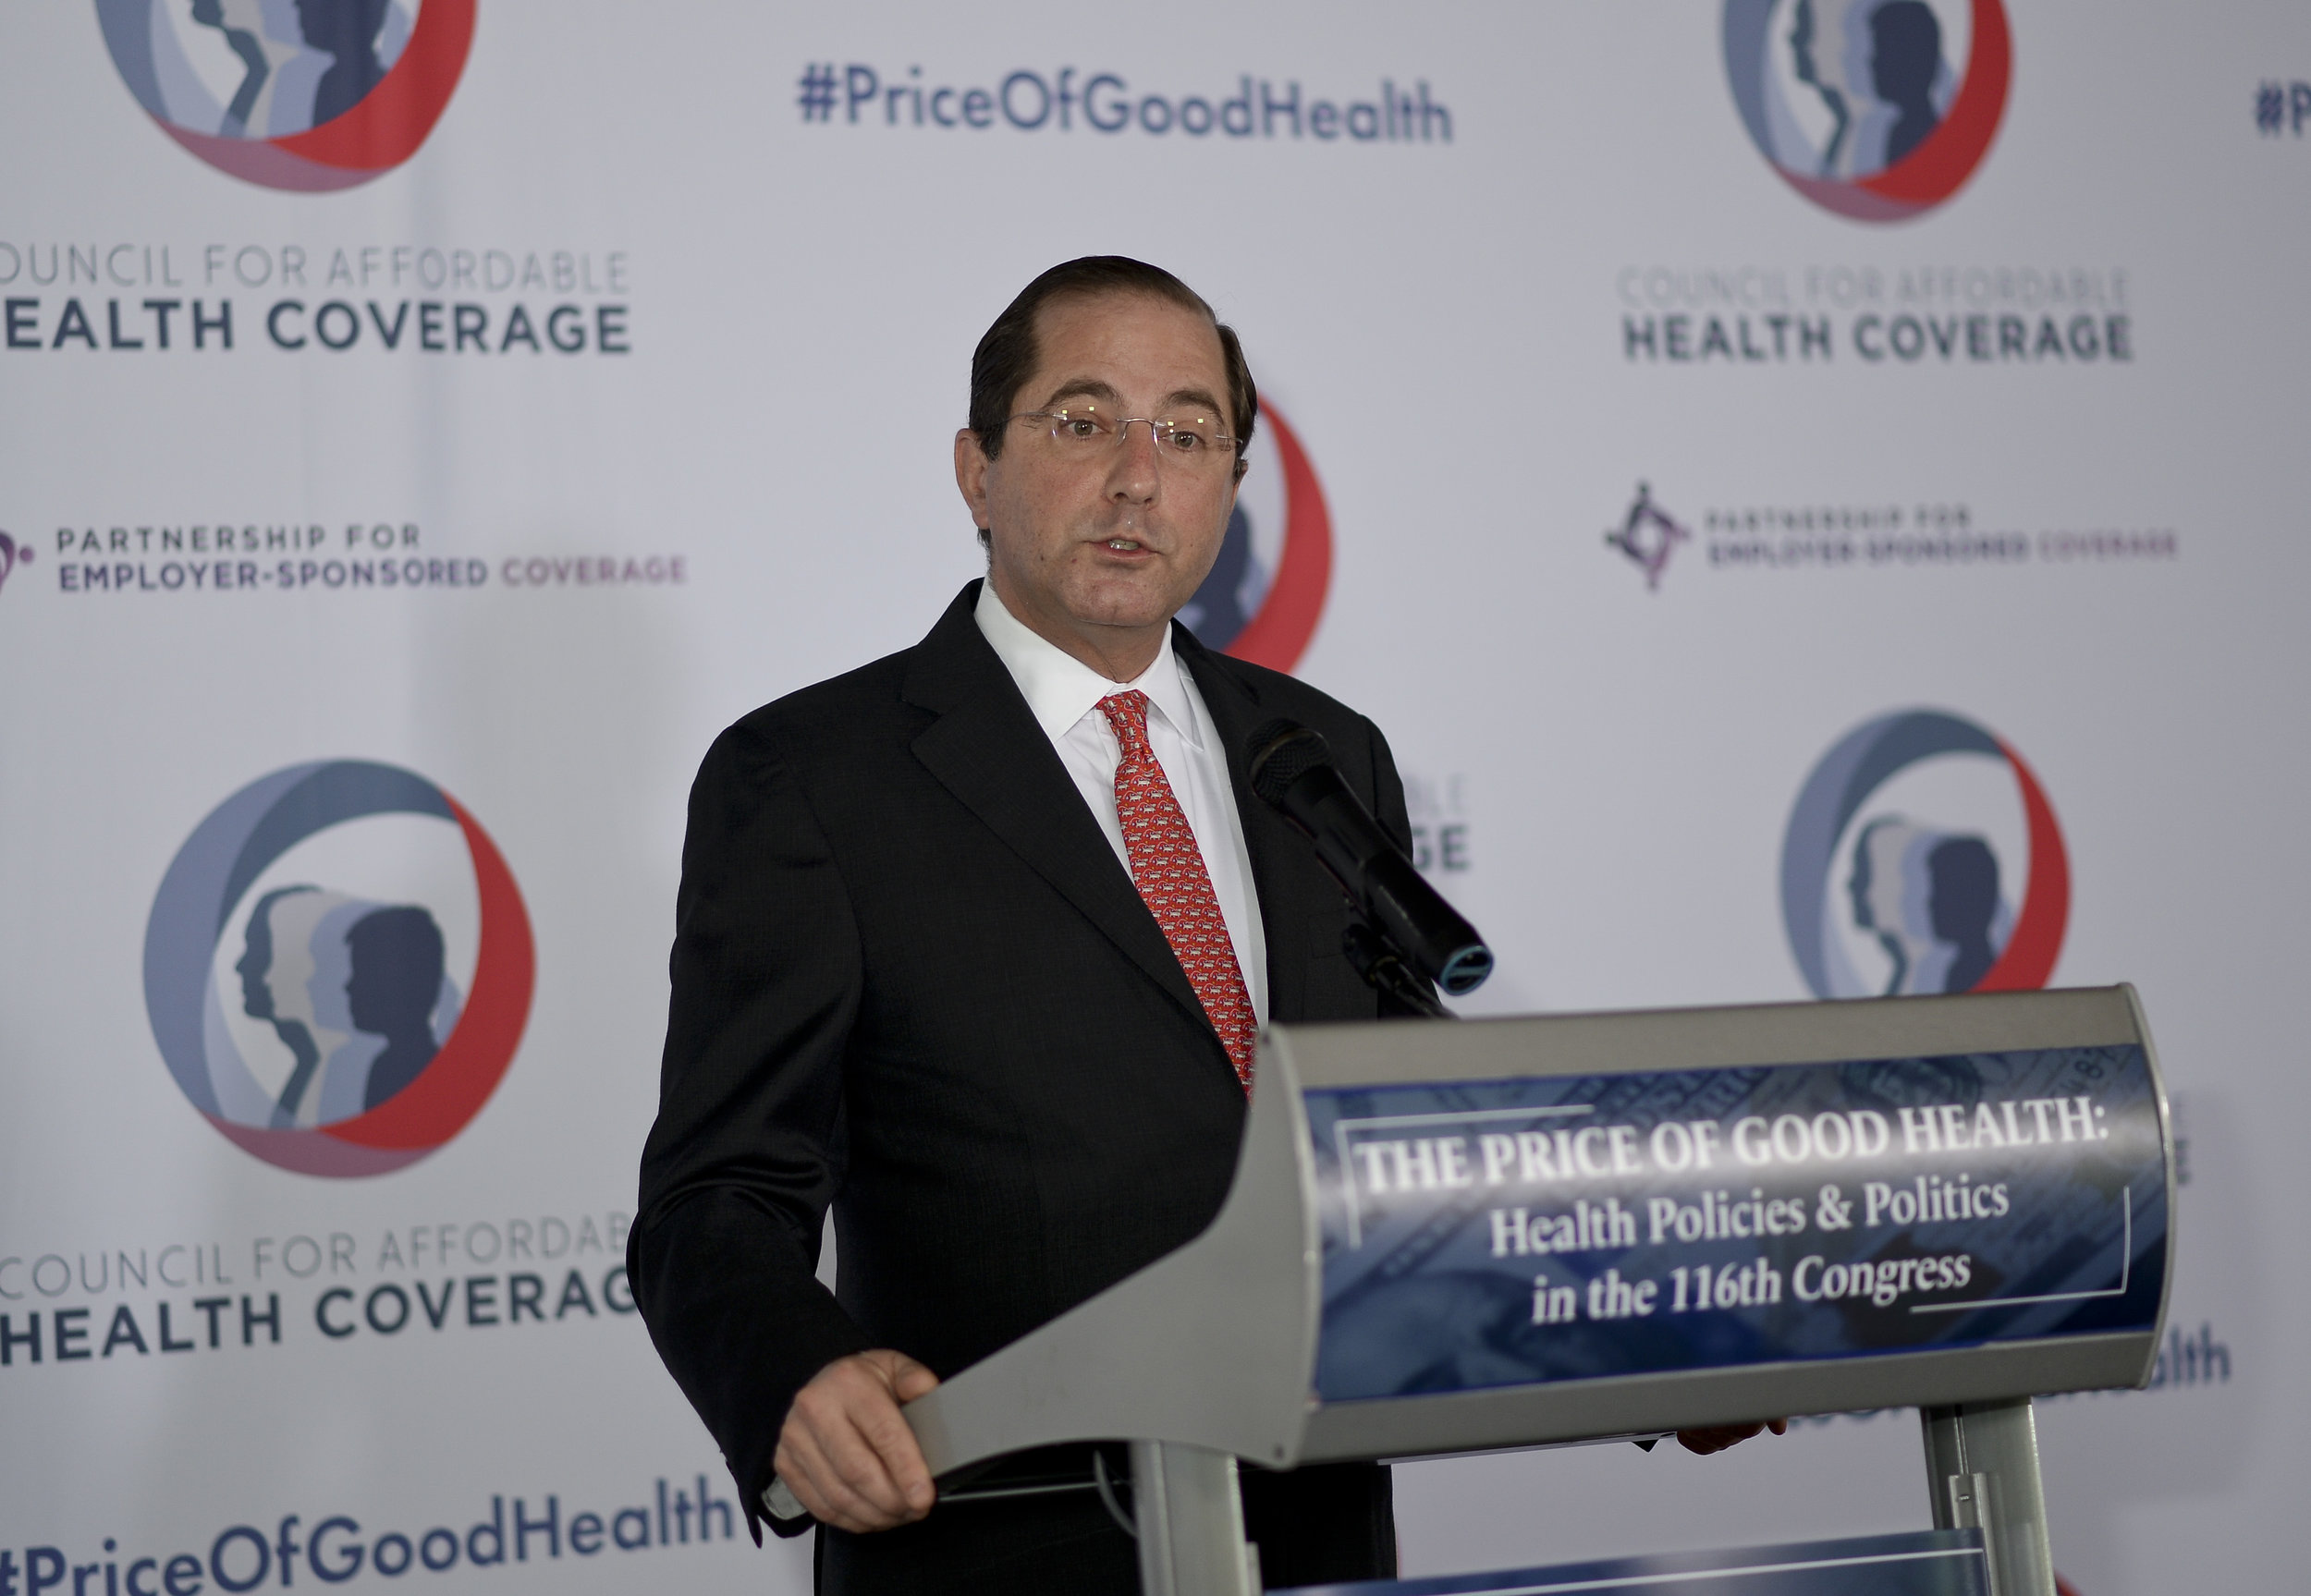 HHS Secretary Alex Azar delivers the morning keynote address